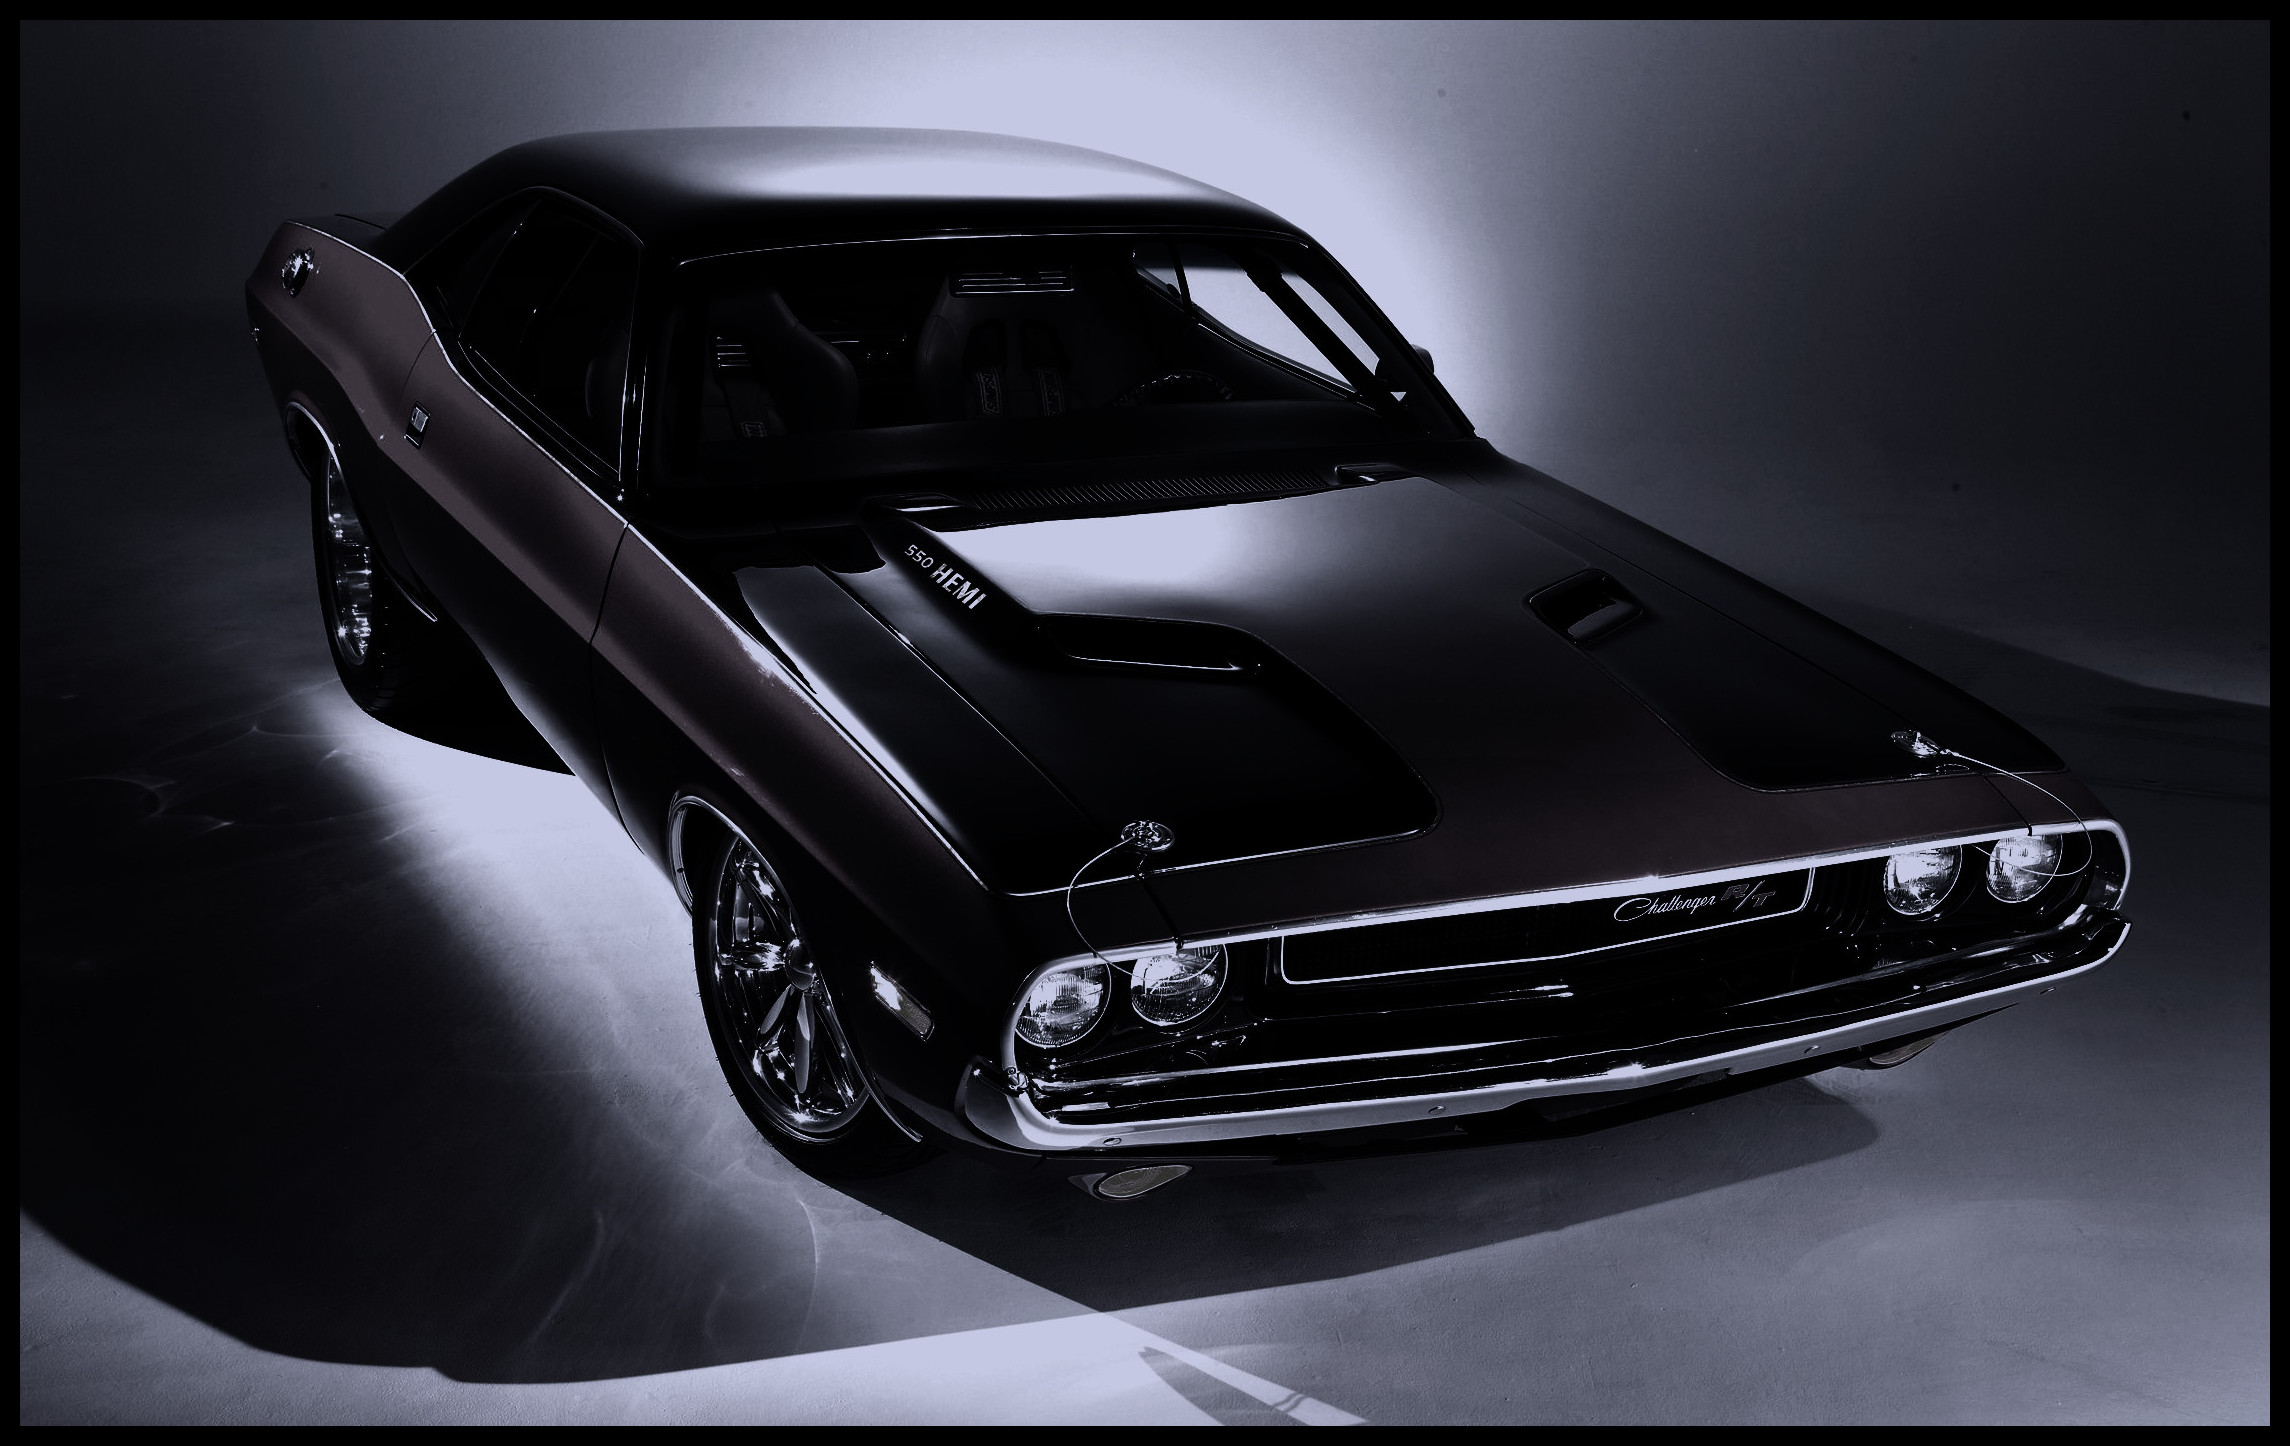 Dodge Challenger   Gotham HD Wallpaper   Hot Wallpapers HD 2290x1446